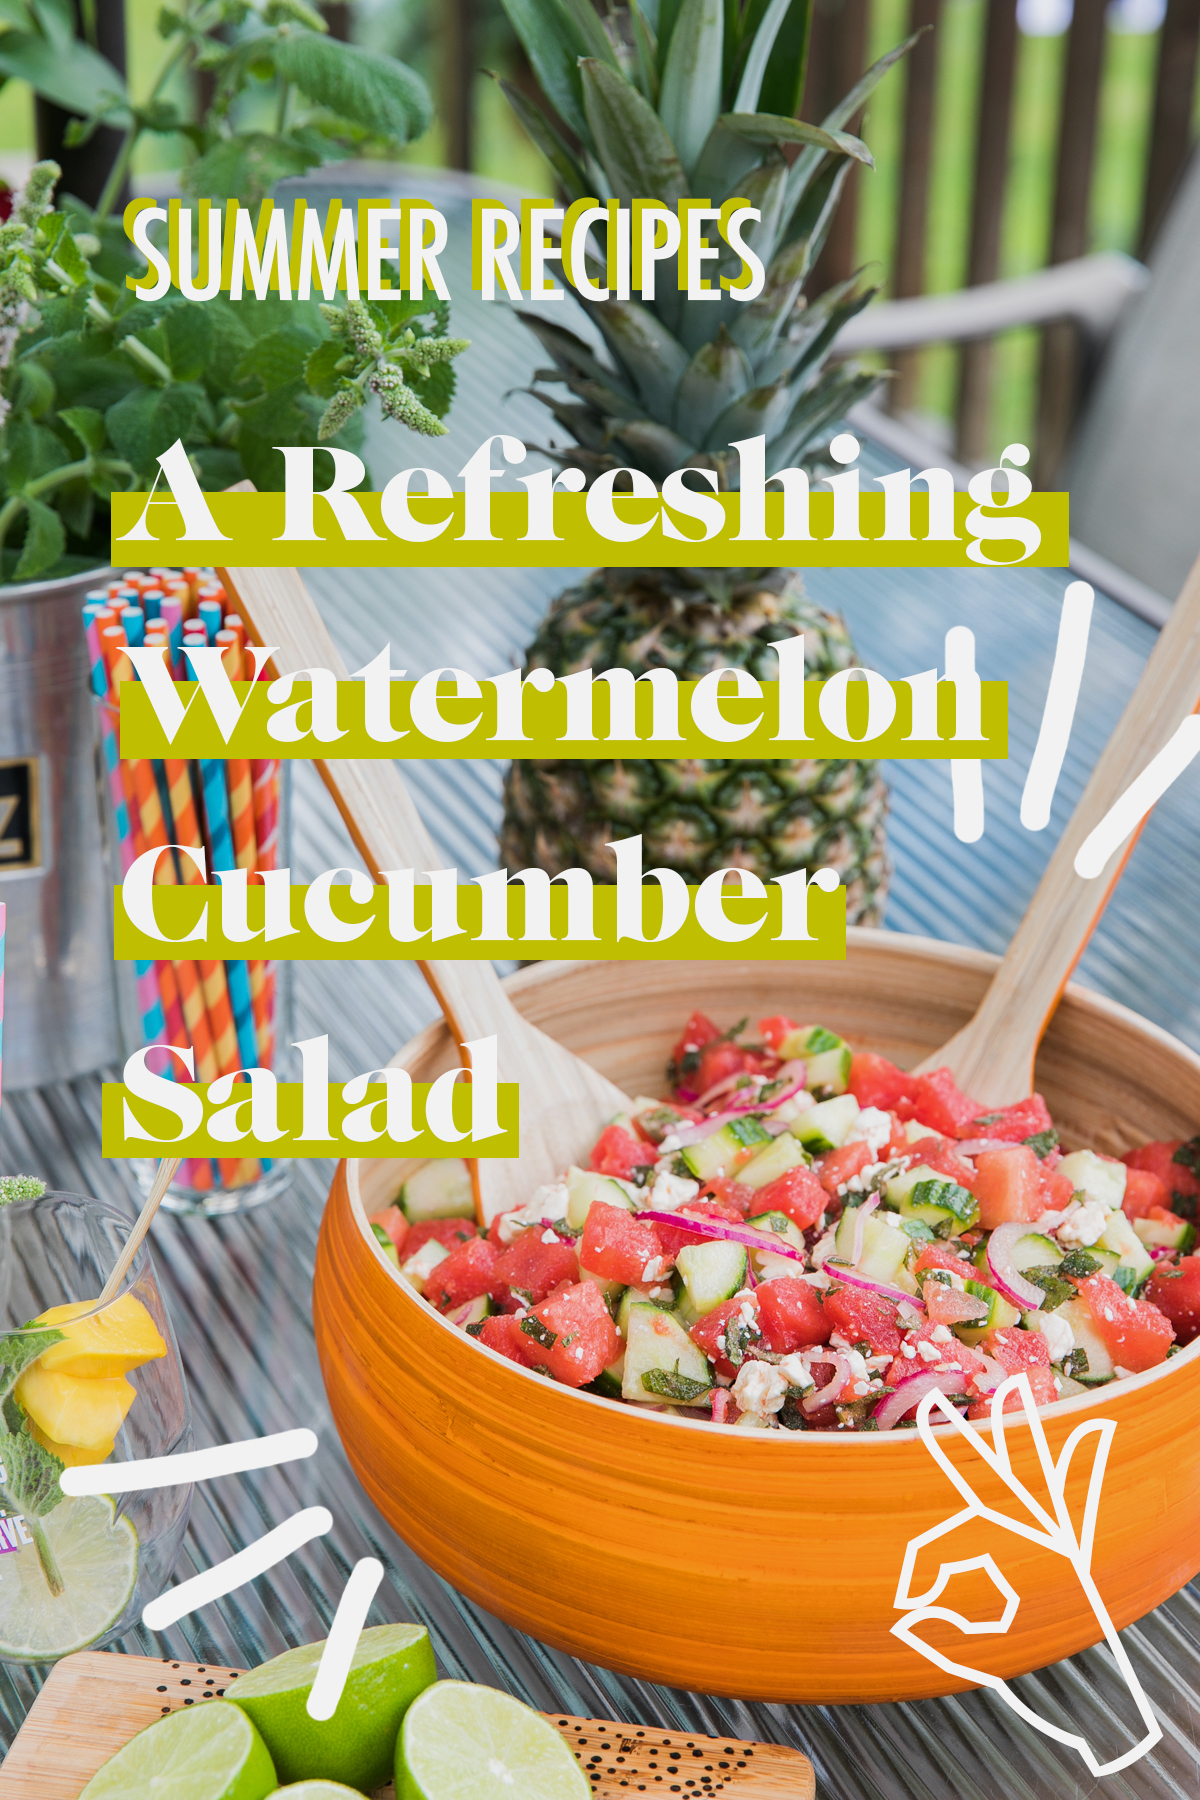 Refreshing Watermelon Cucumber Salad | Summer Recipes | Healthy Summer Recipes | Jessica Brigham | Magazine Ready for Life